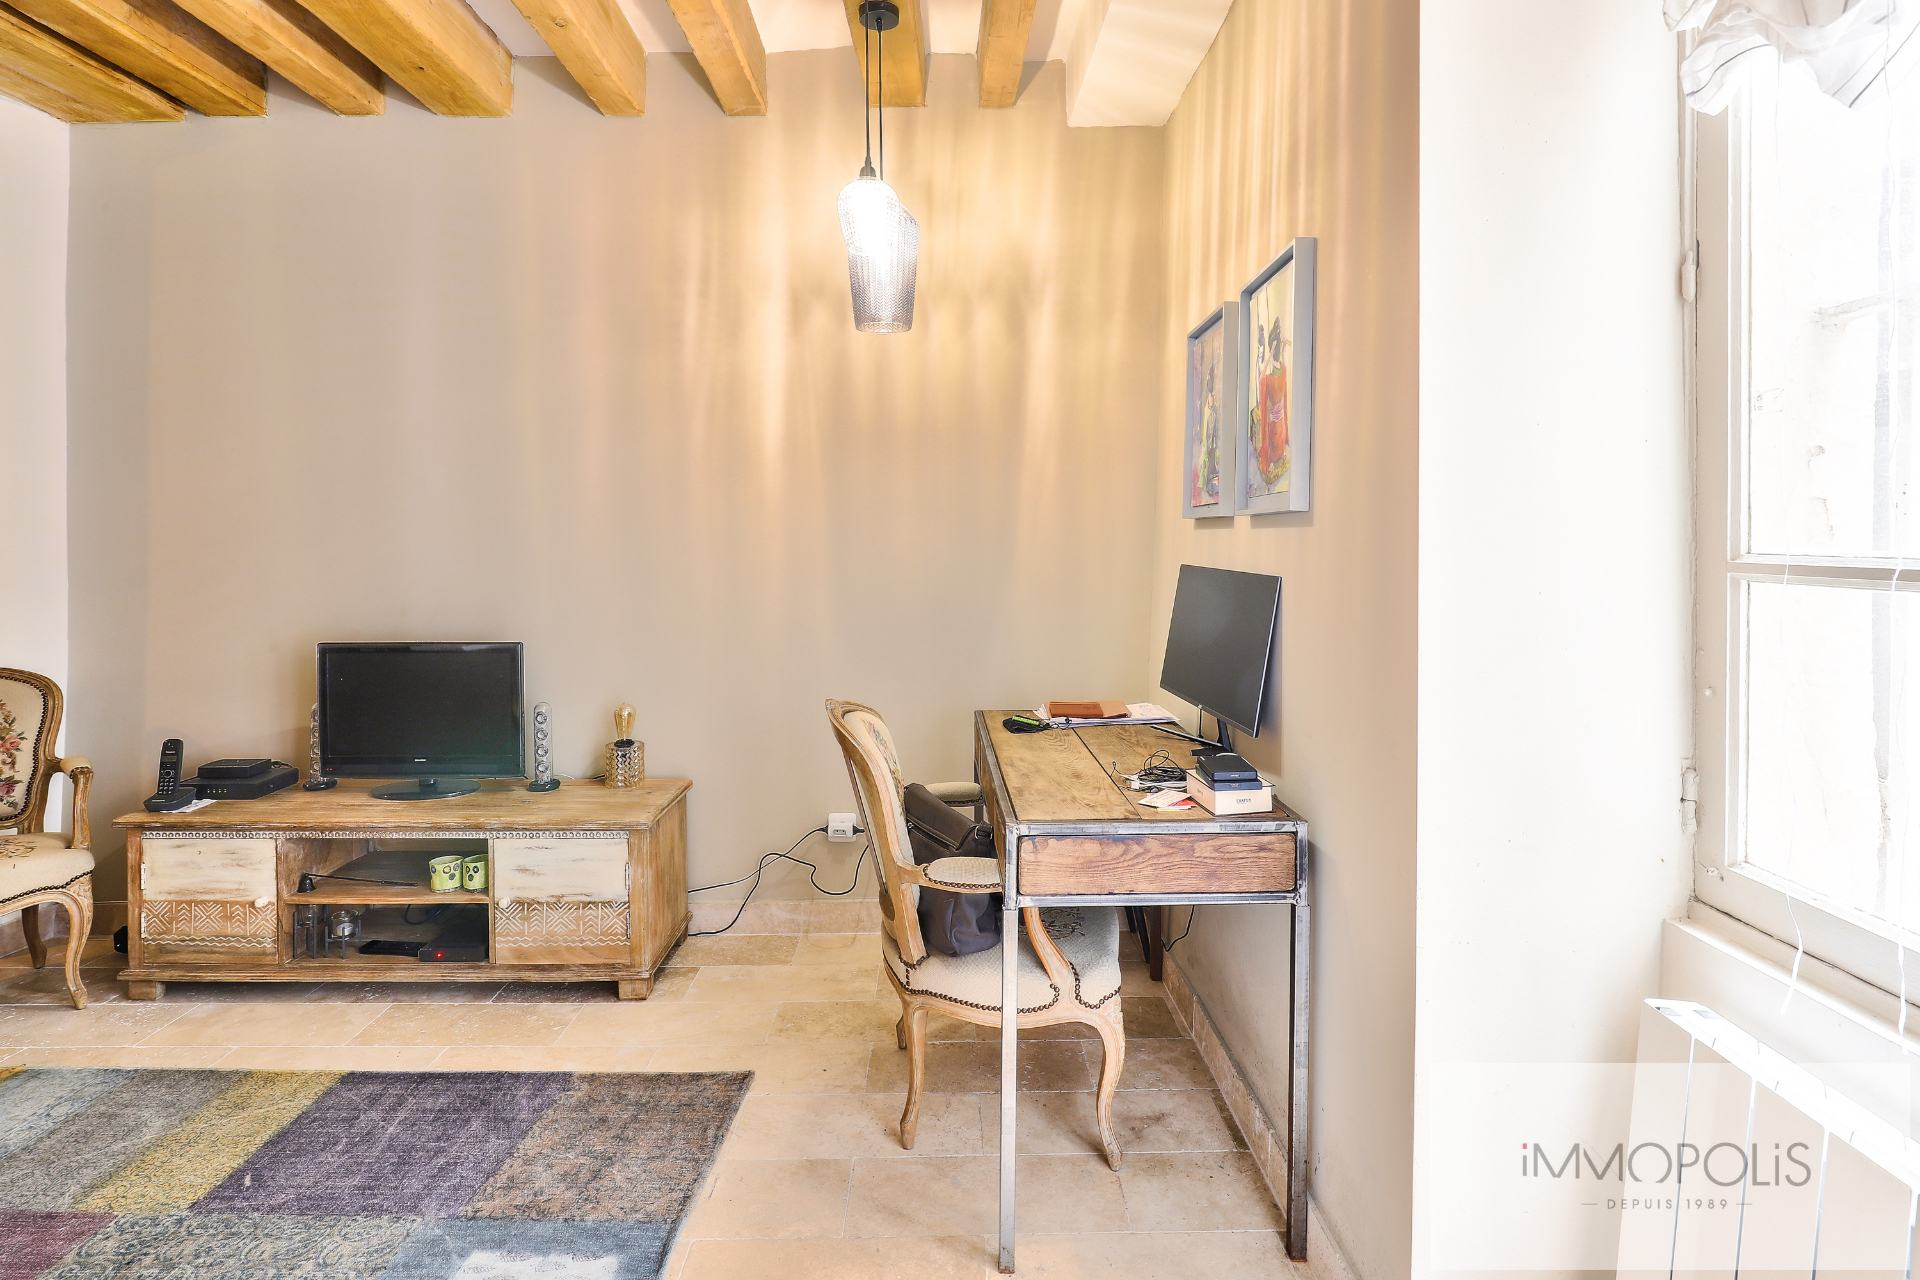 Montmartre, rue Gabrielle, beautiful 2 rooms completely renovated with stones, bricks and exposed beams: like a house! 5